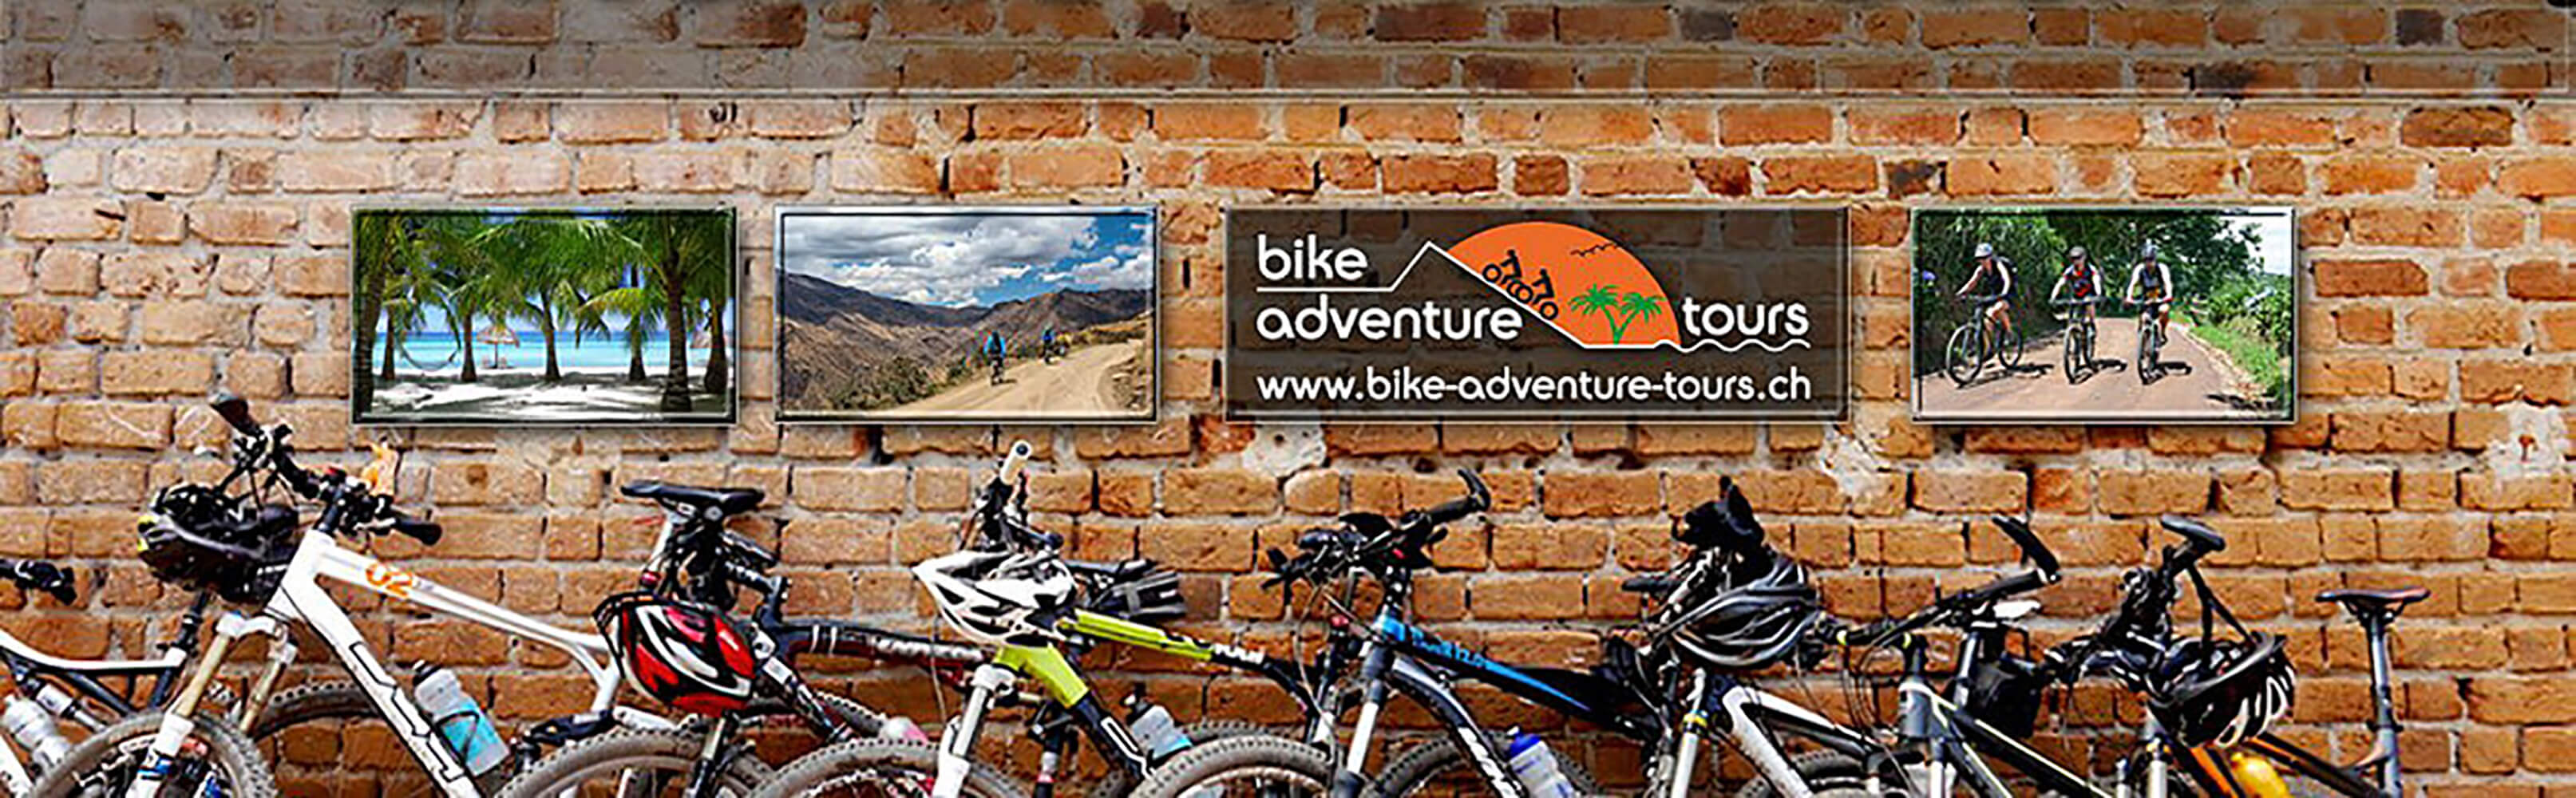 bike adventure tours 1